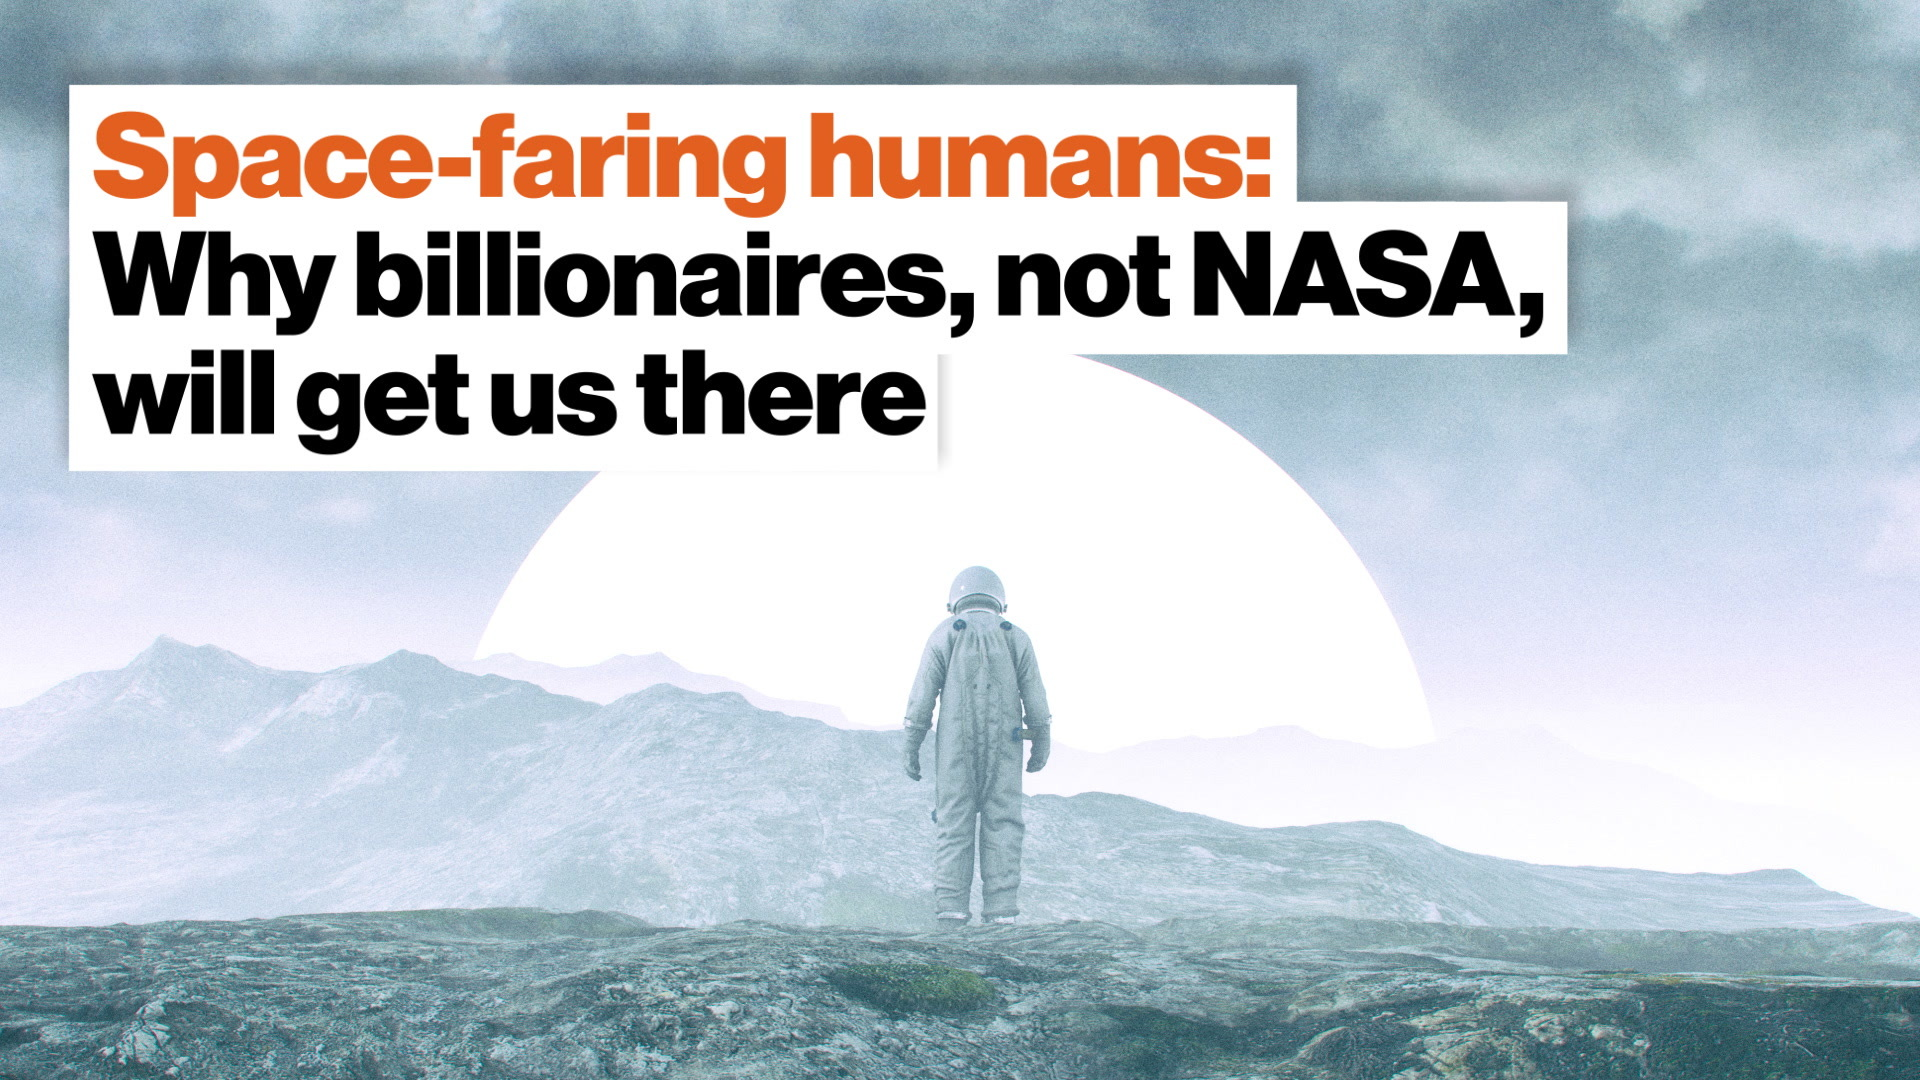 Space-faring humans: Why billionaires, not NASA, will get us there